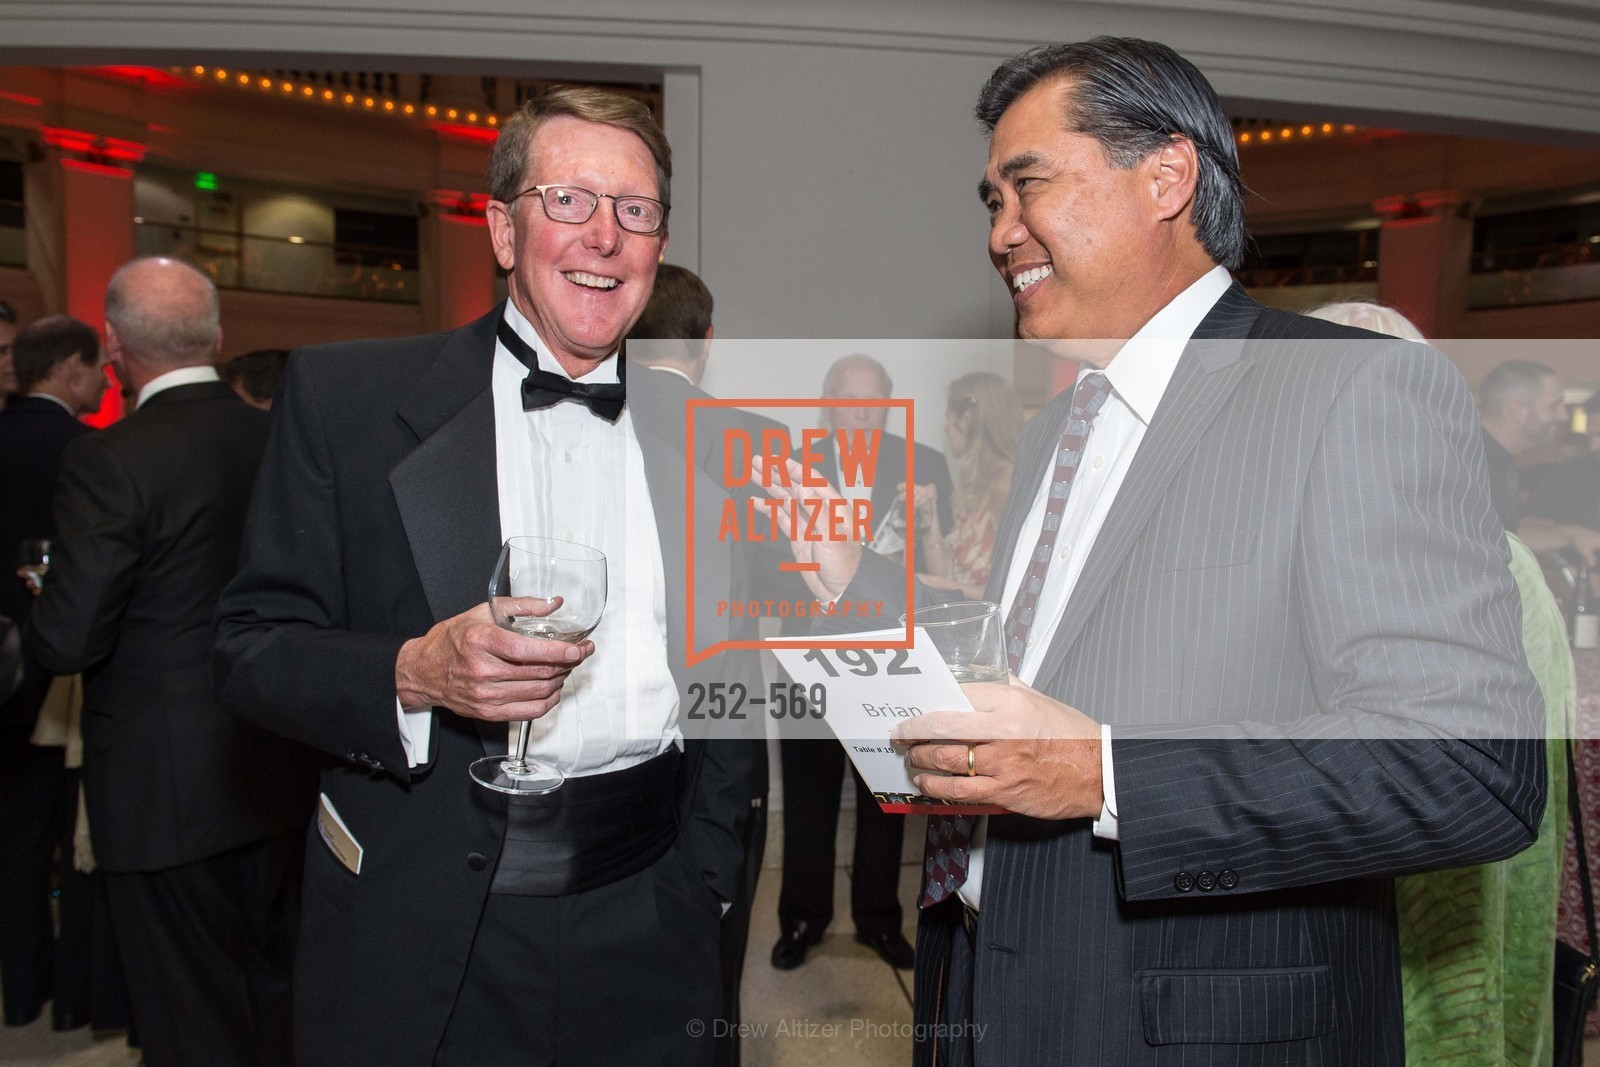 Brian Tong, CHABOT Science Center STARLIGHT GALA, US, September 20th, 2014,Drew Altizer, Drew Altizer Photography, full-service agency, private events, San Francisco photographer, photographer california